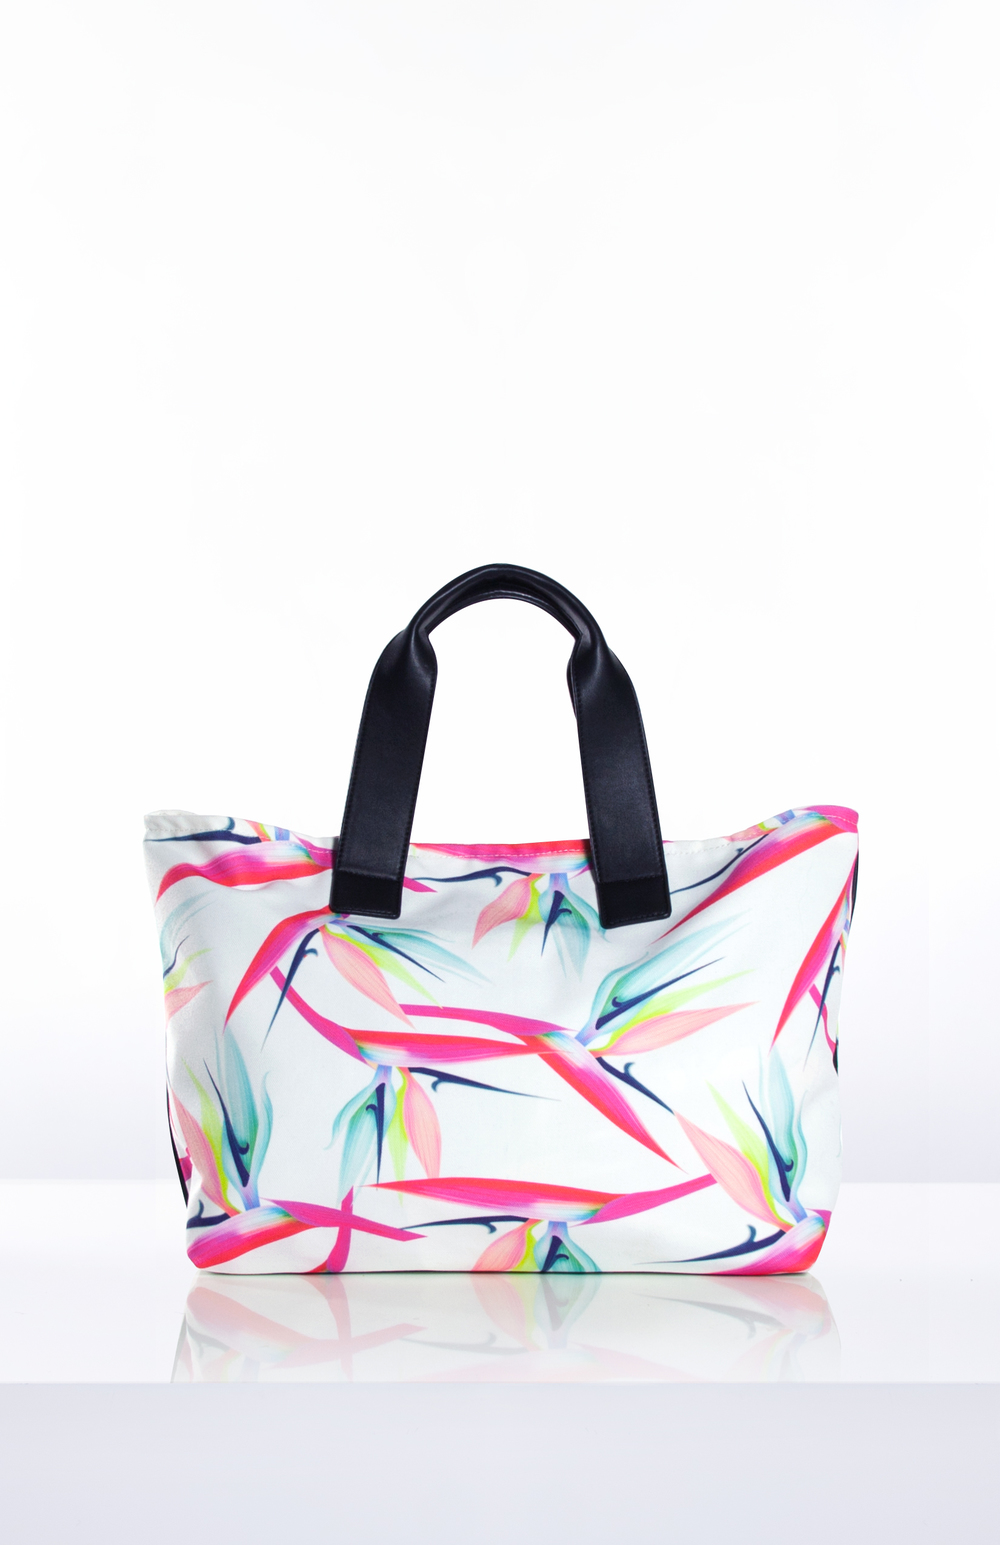 Verge Creative Group's Georgette weekender and beach tote with a custom printed canvas body